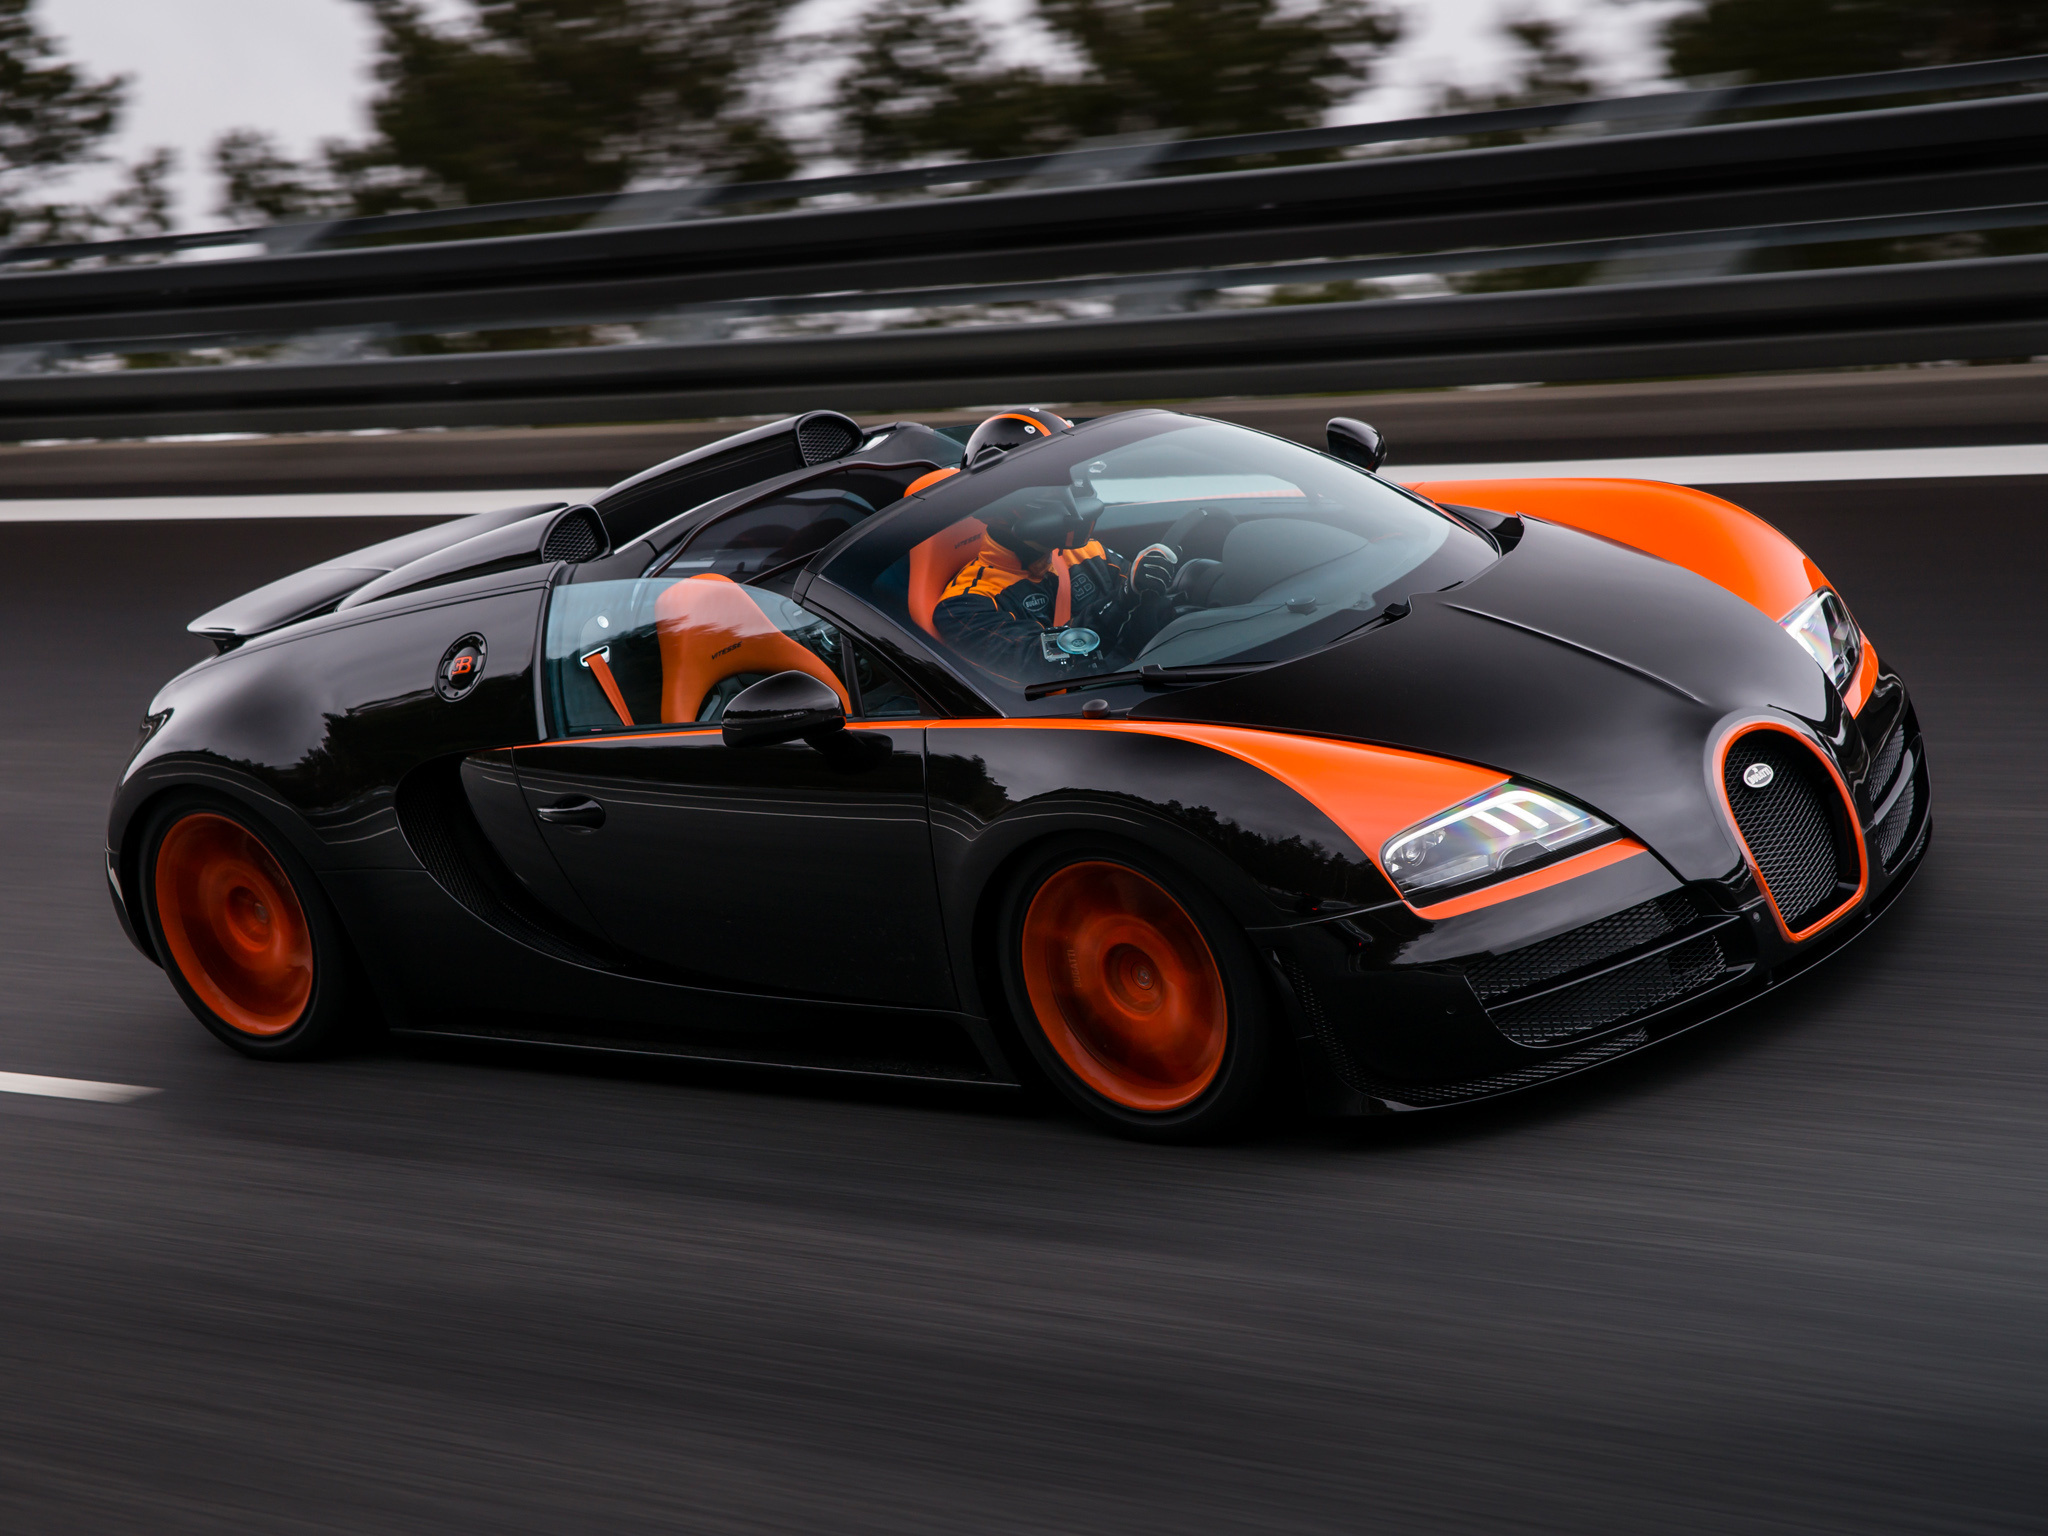 152877 download wallpaper Bugatti, Cars, Roadster, Veyron, Grand Sport, Vitesse, Wrc Edition screensavers and pictures for free